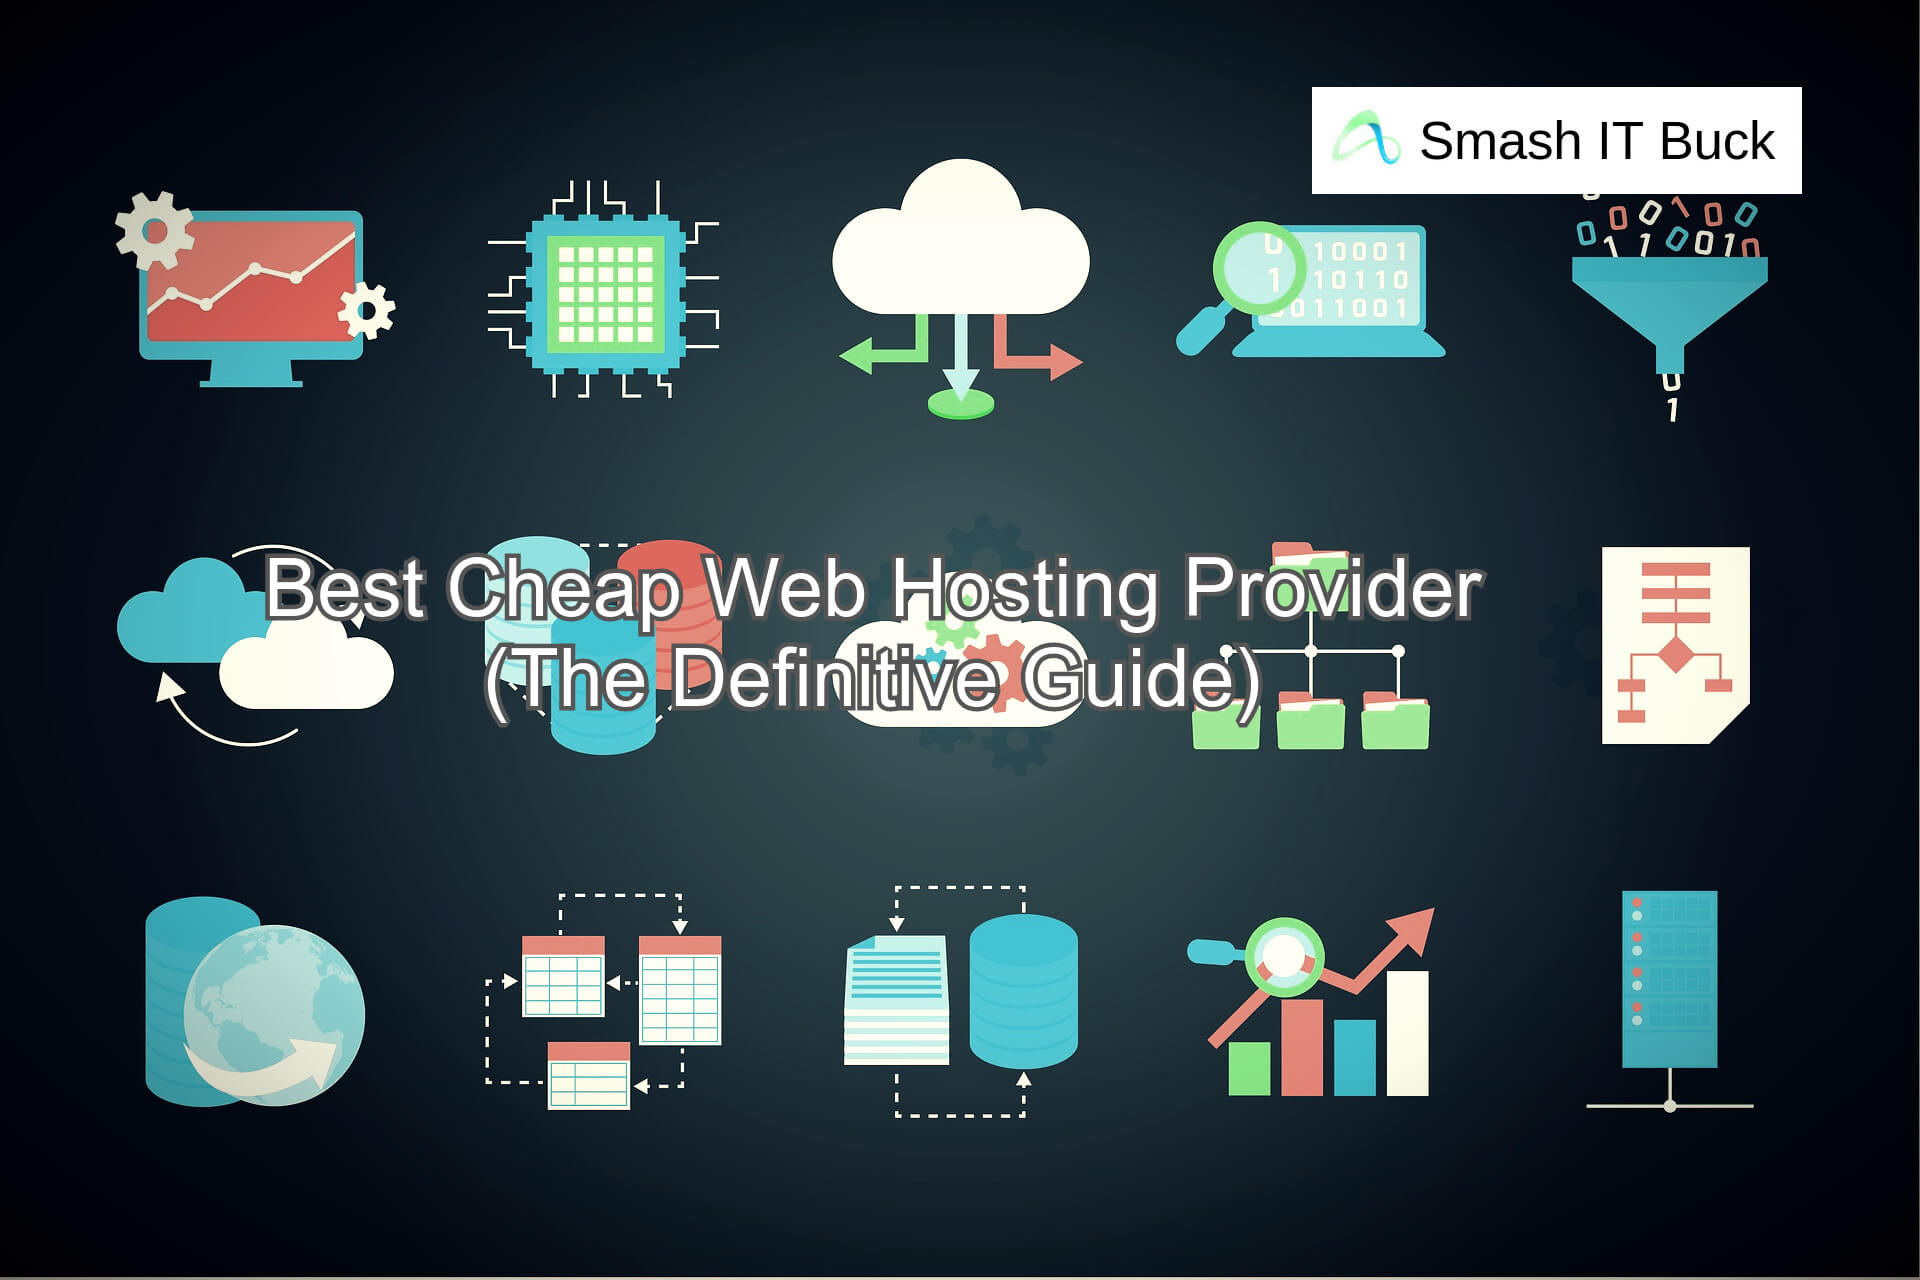 Best Cheap Web Hosting Services of 2021